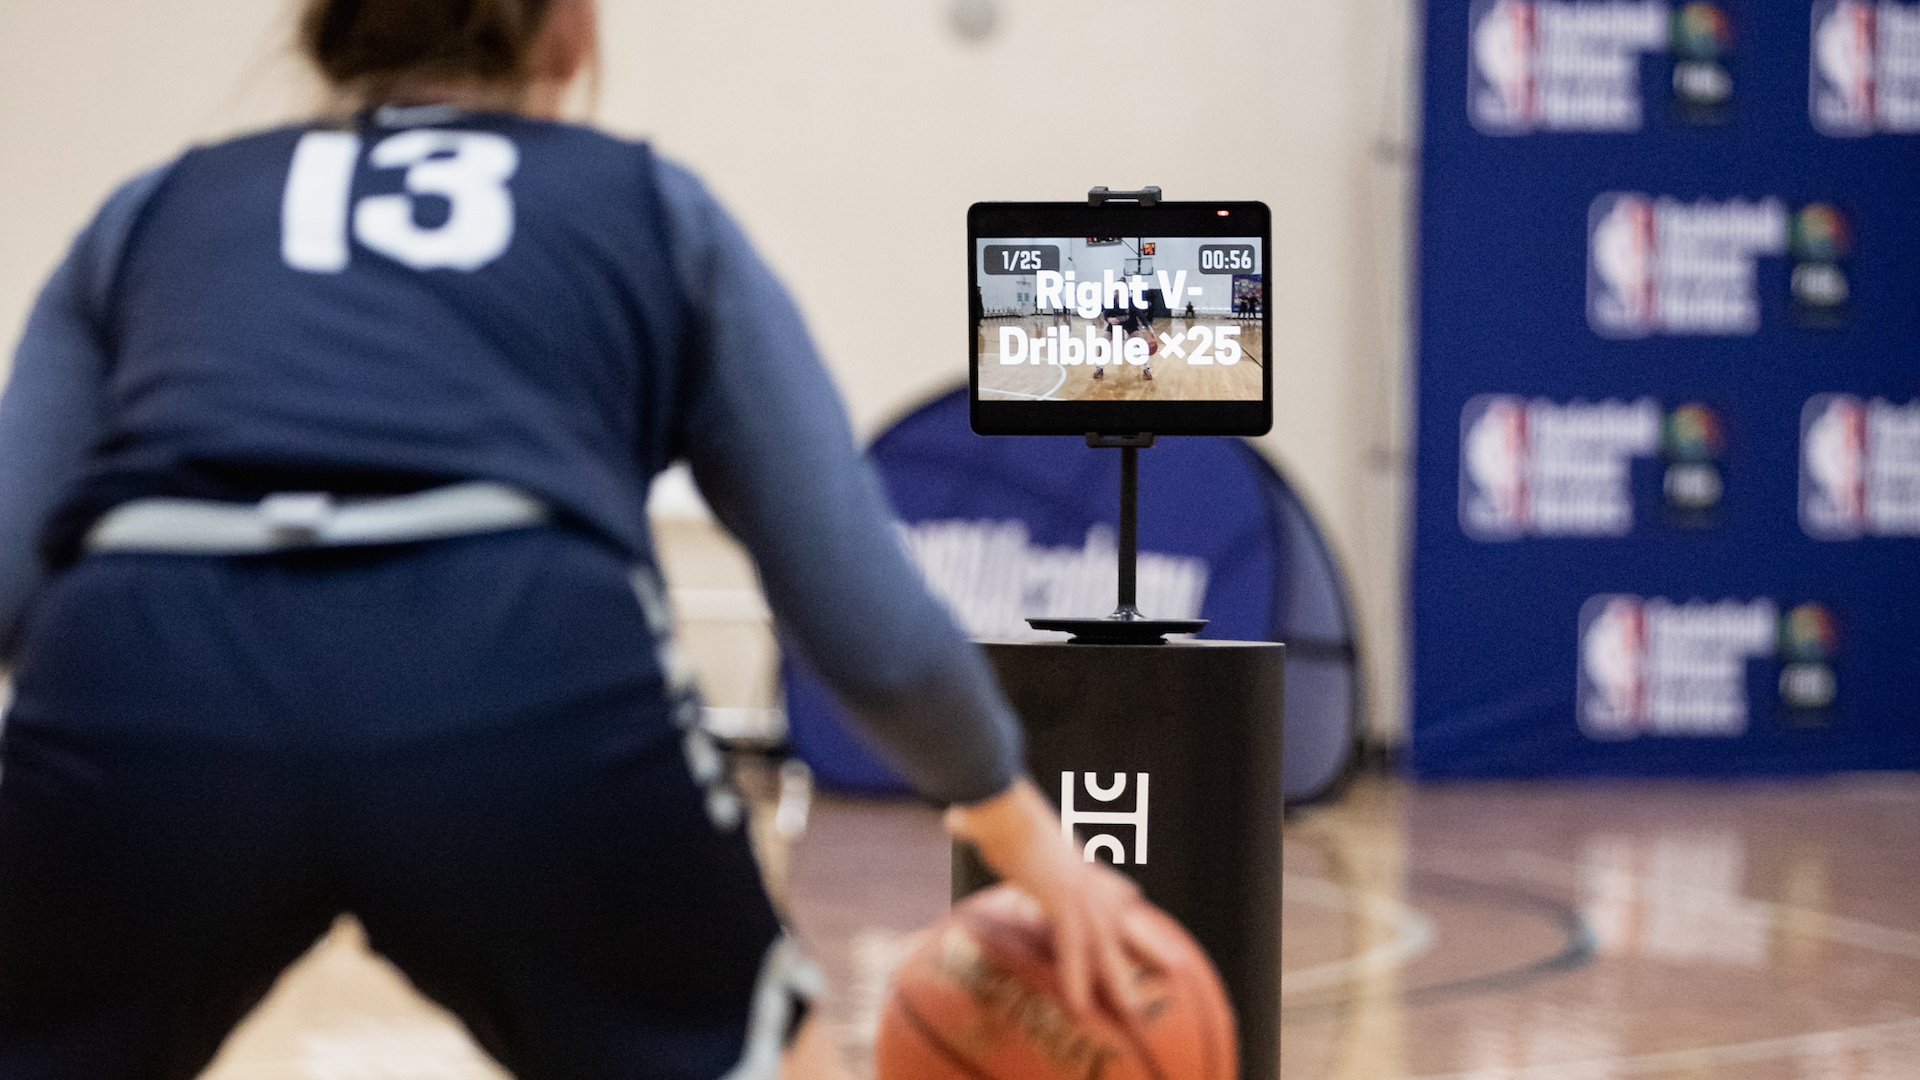 NBA and WNBA scouting goes high tech